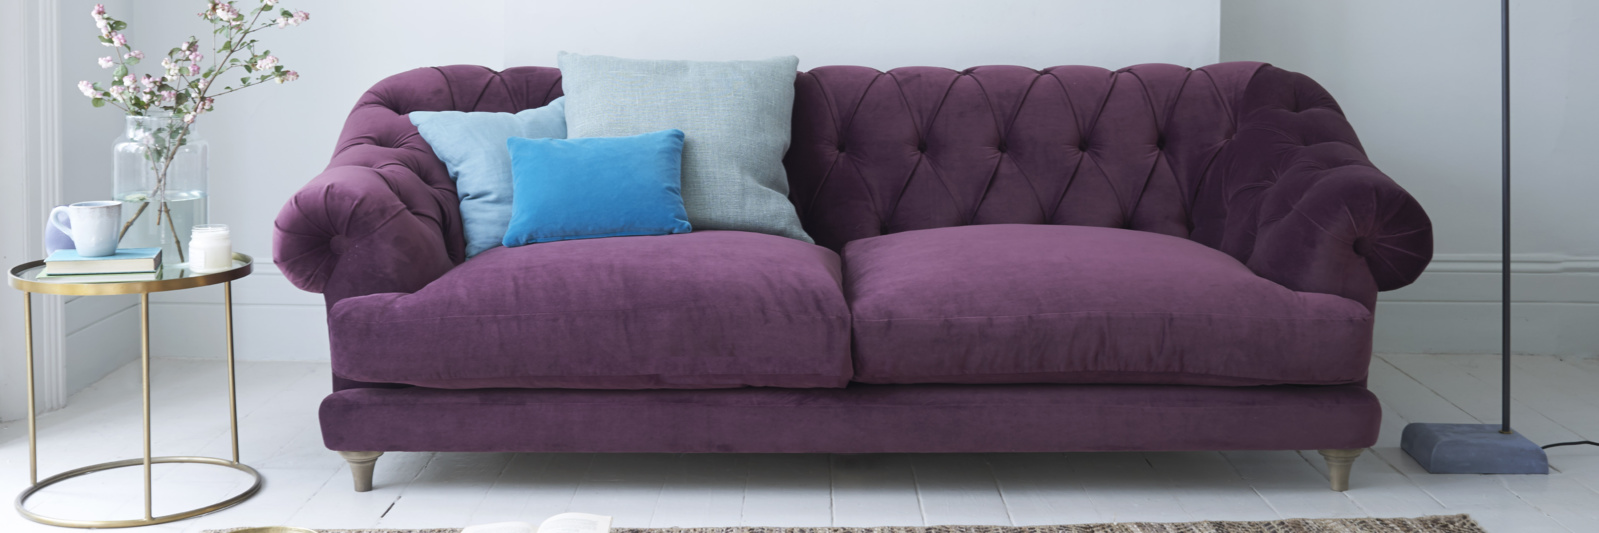 purple sofa bagsie deep-buttoned chesterfield sofa in purple fabric jcdluzs